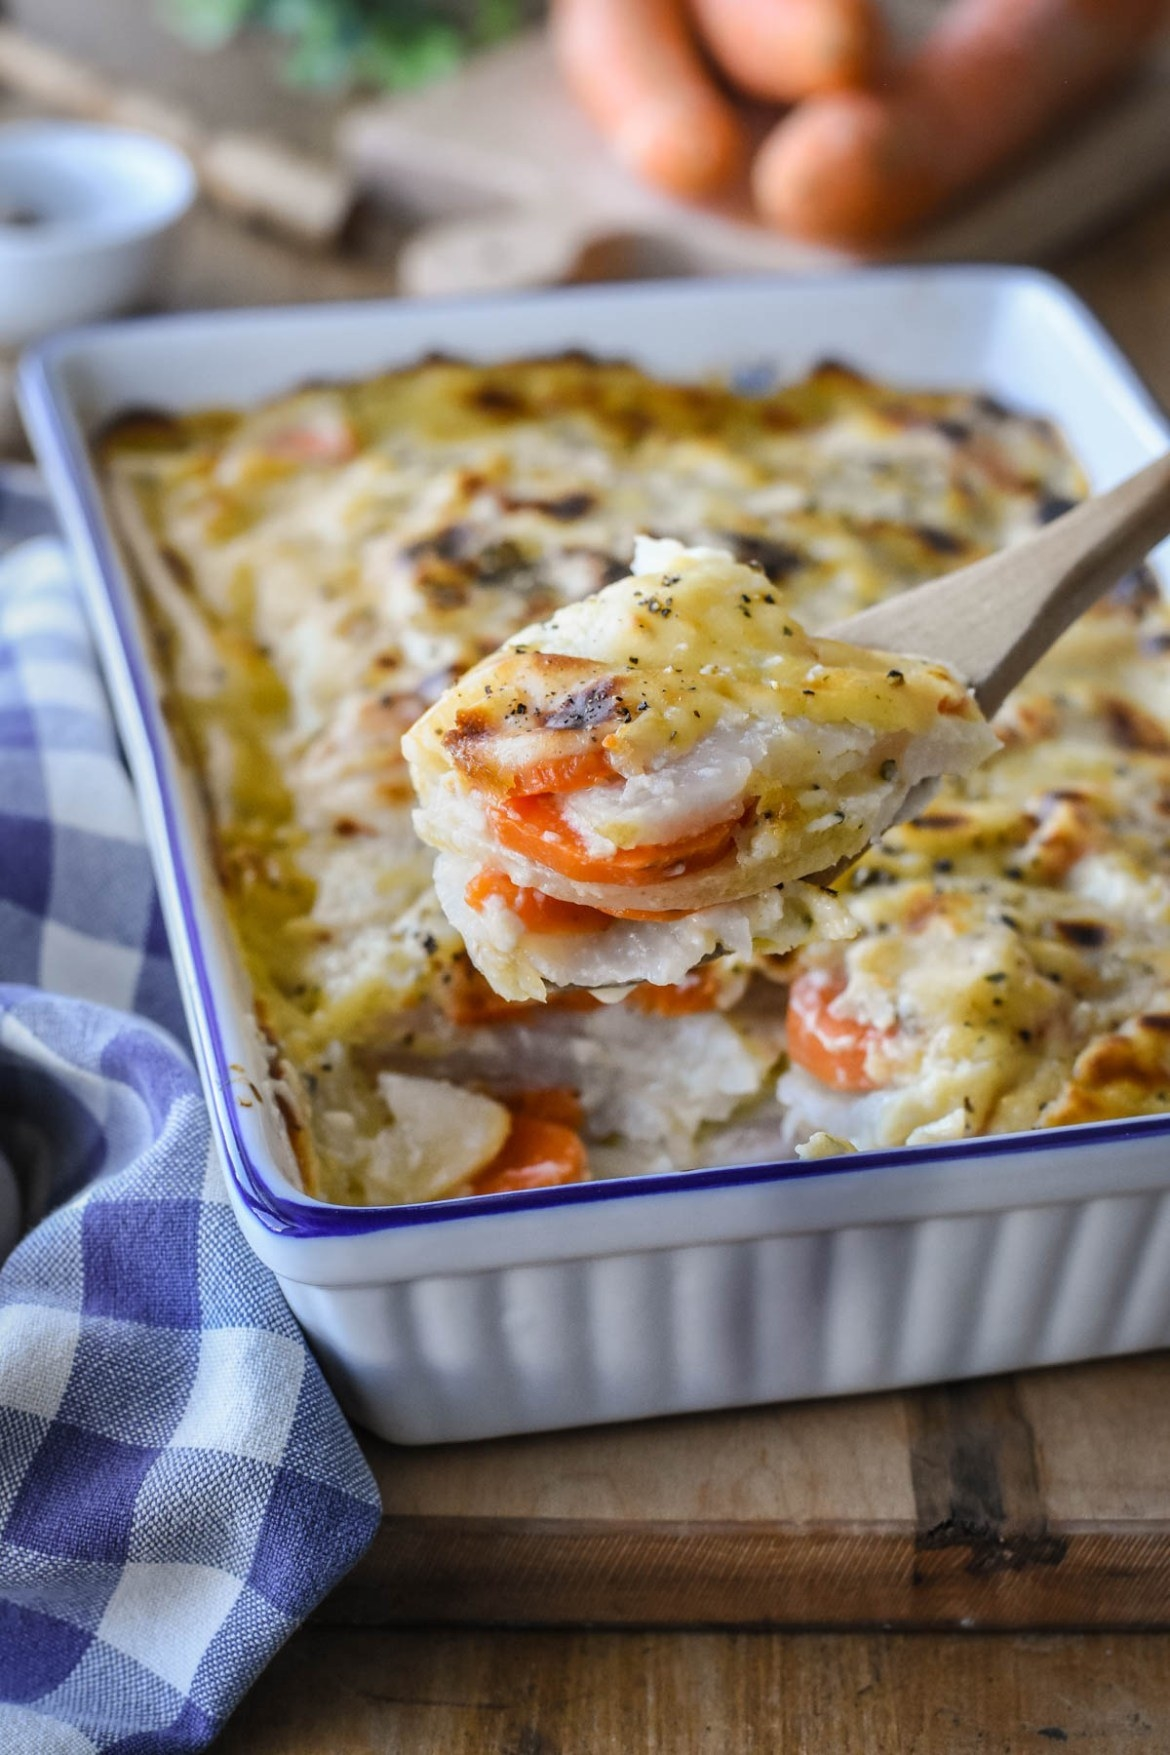 A baking dish filled with cheesy turnip and carrot au gratin.